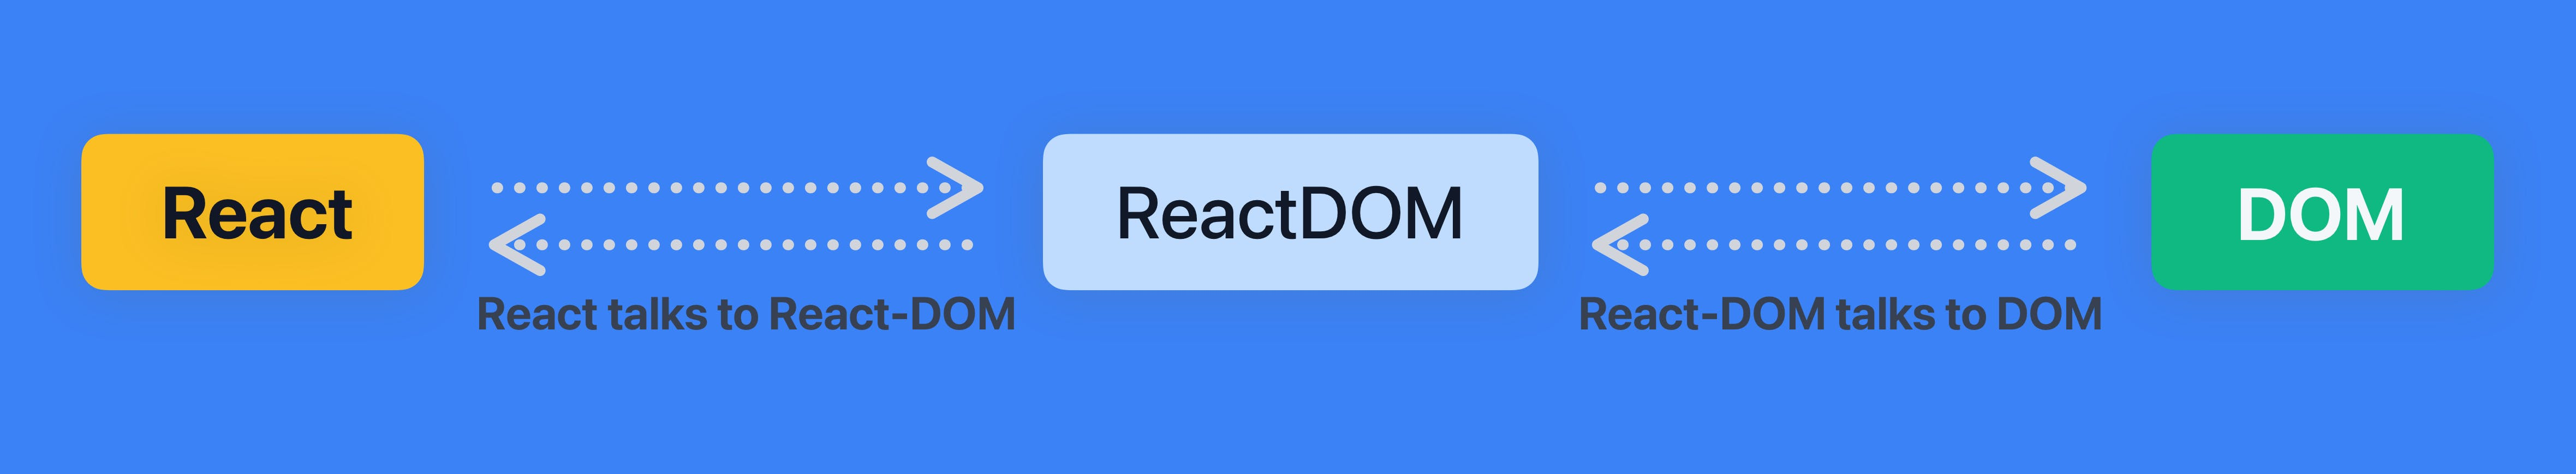 React_and_ReactDOM_Copy_3.png